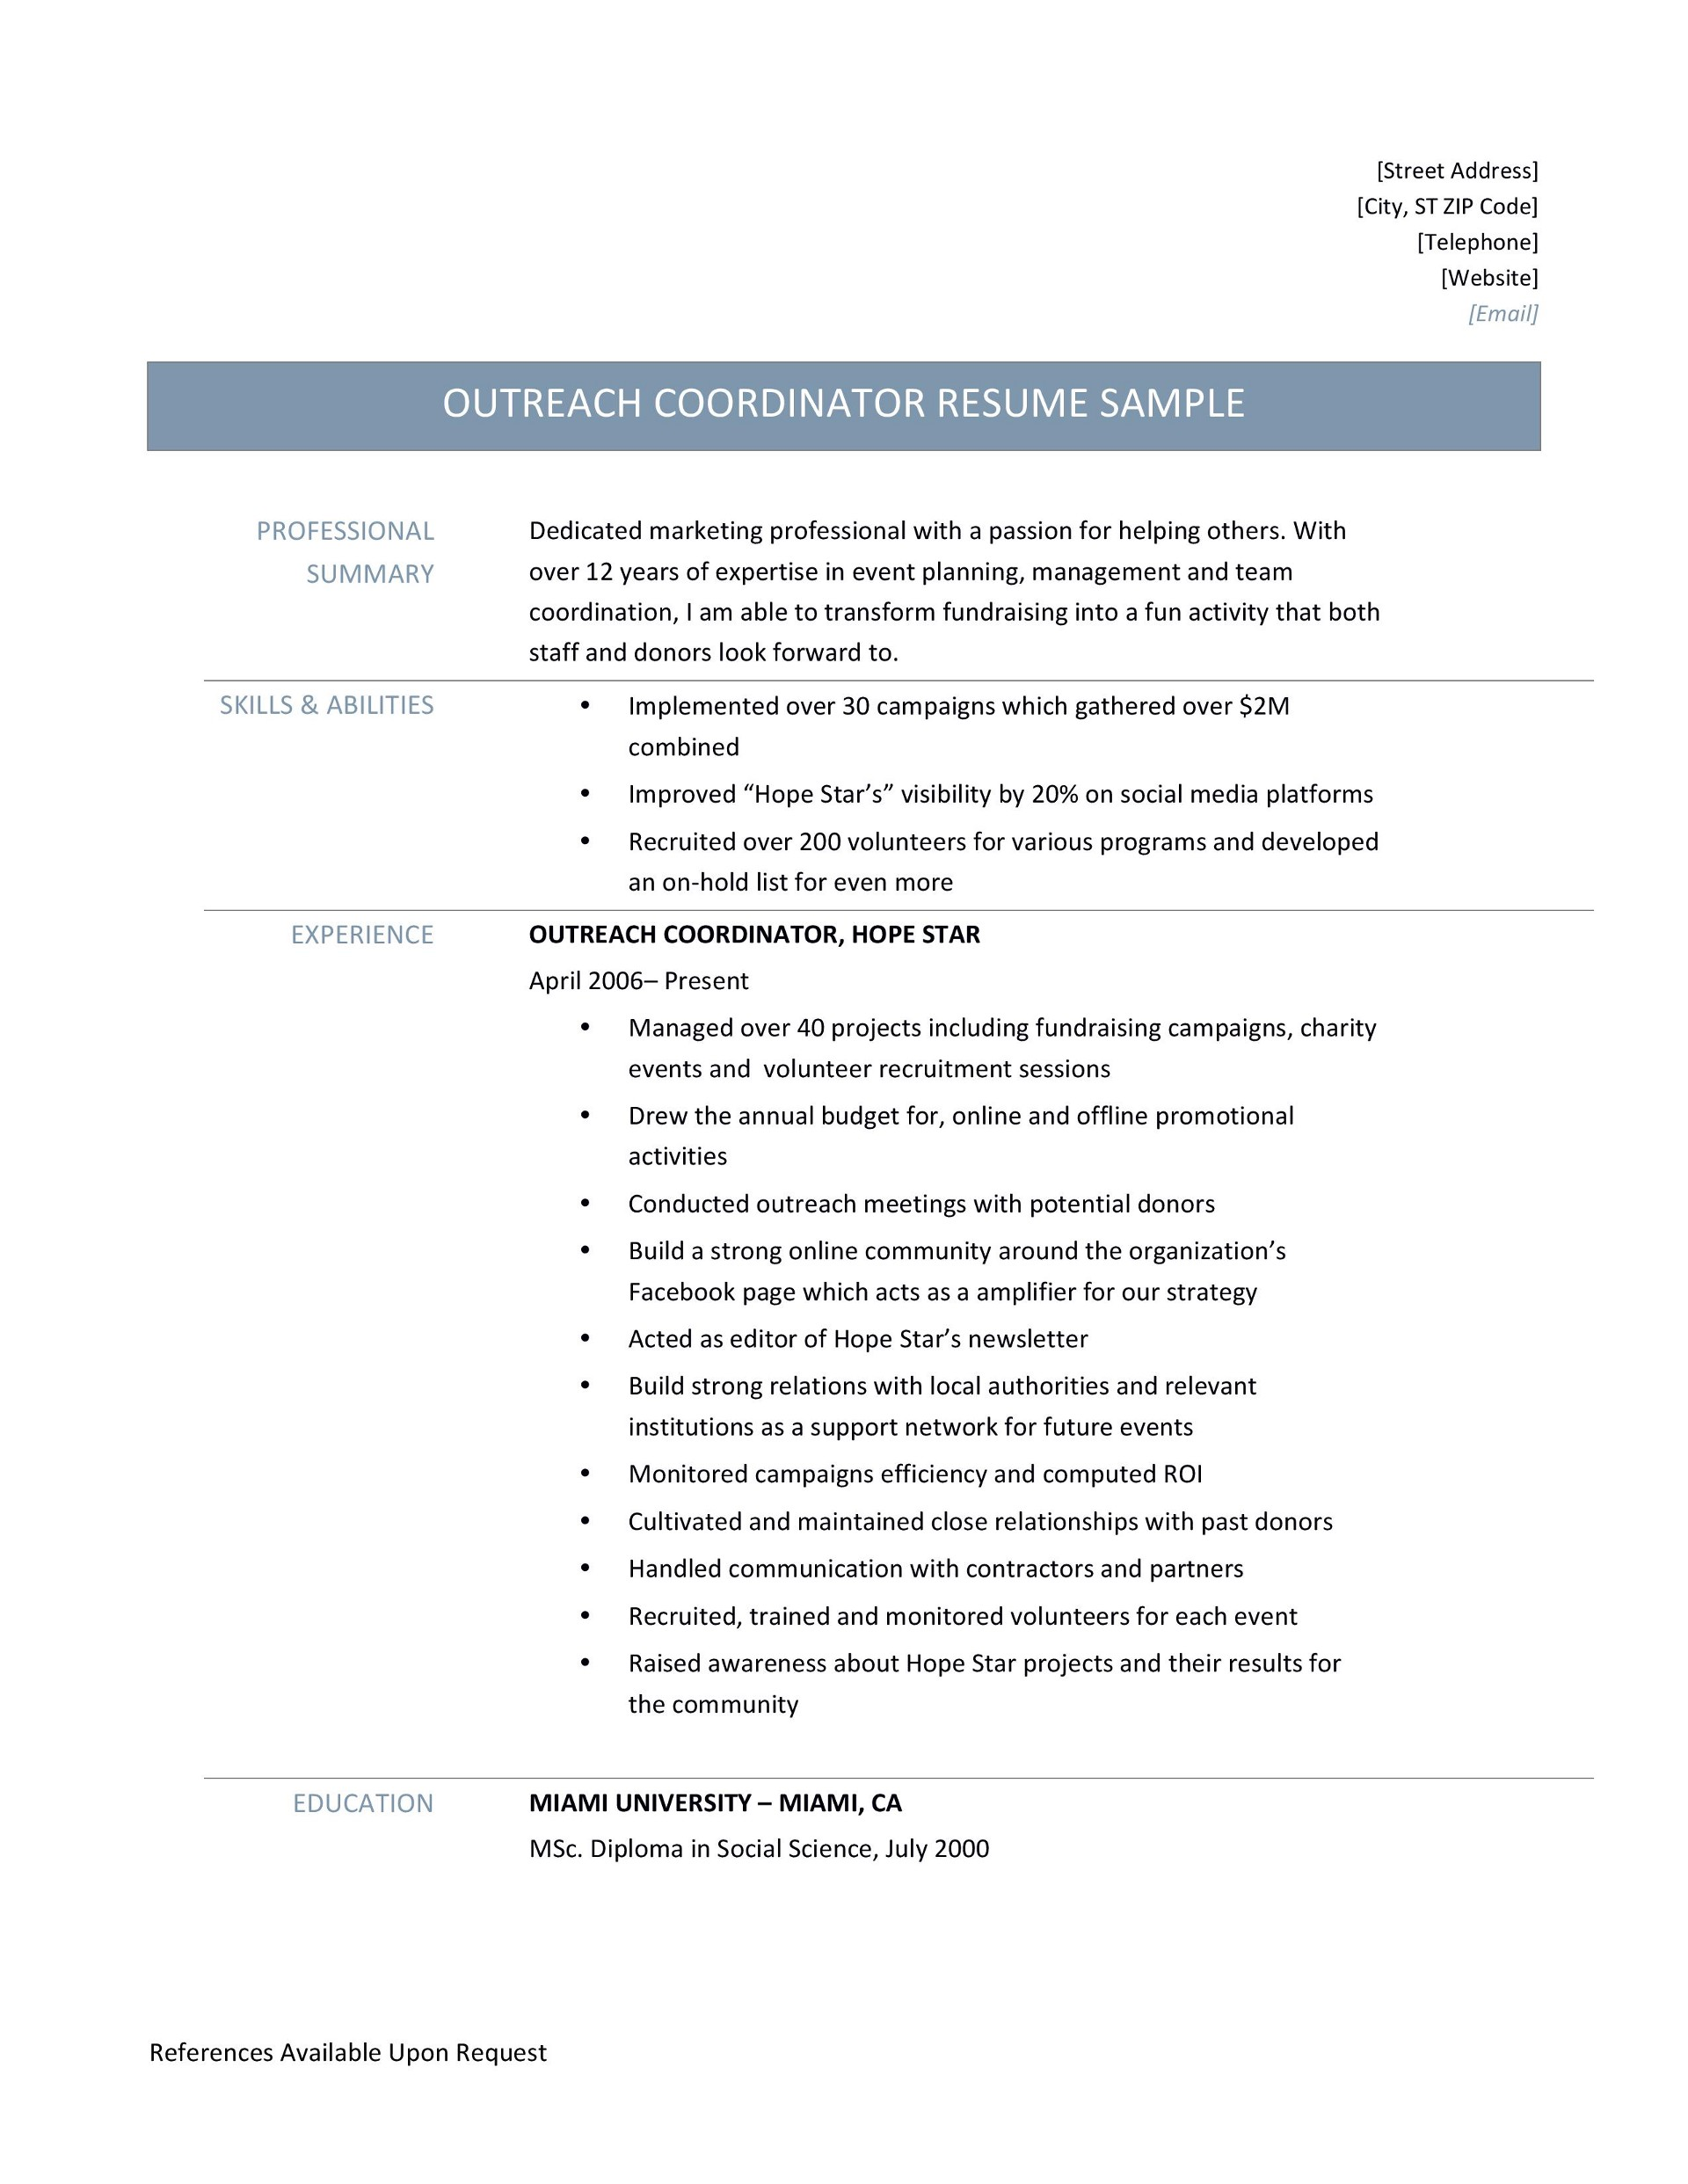 outreach coordinator resume samples tips and template